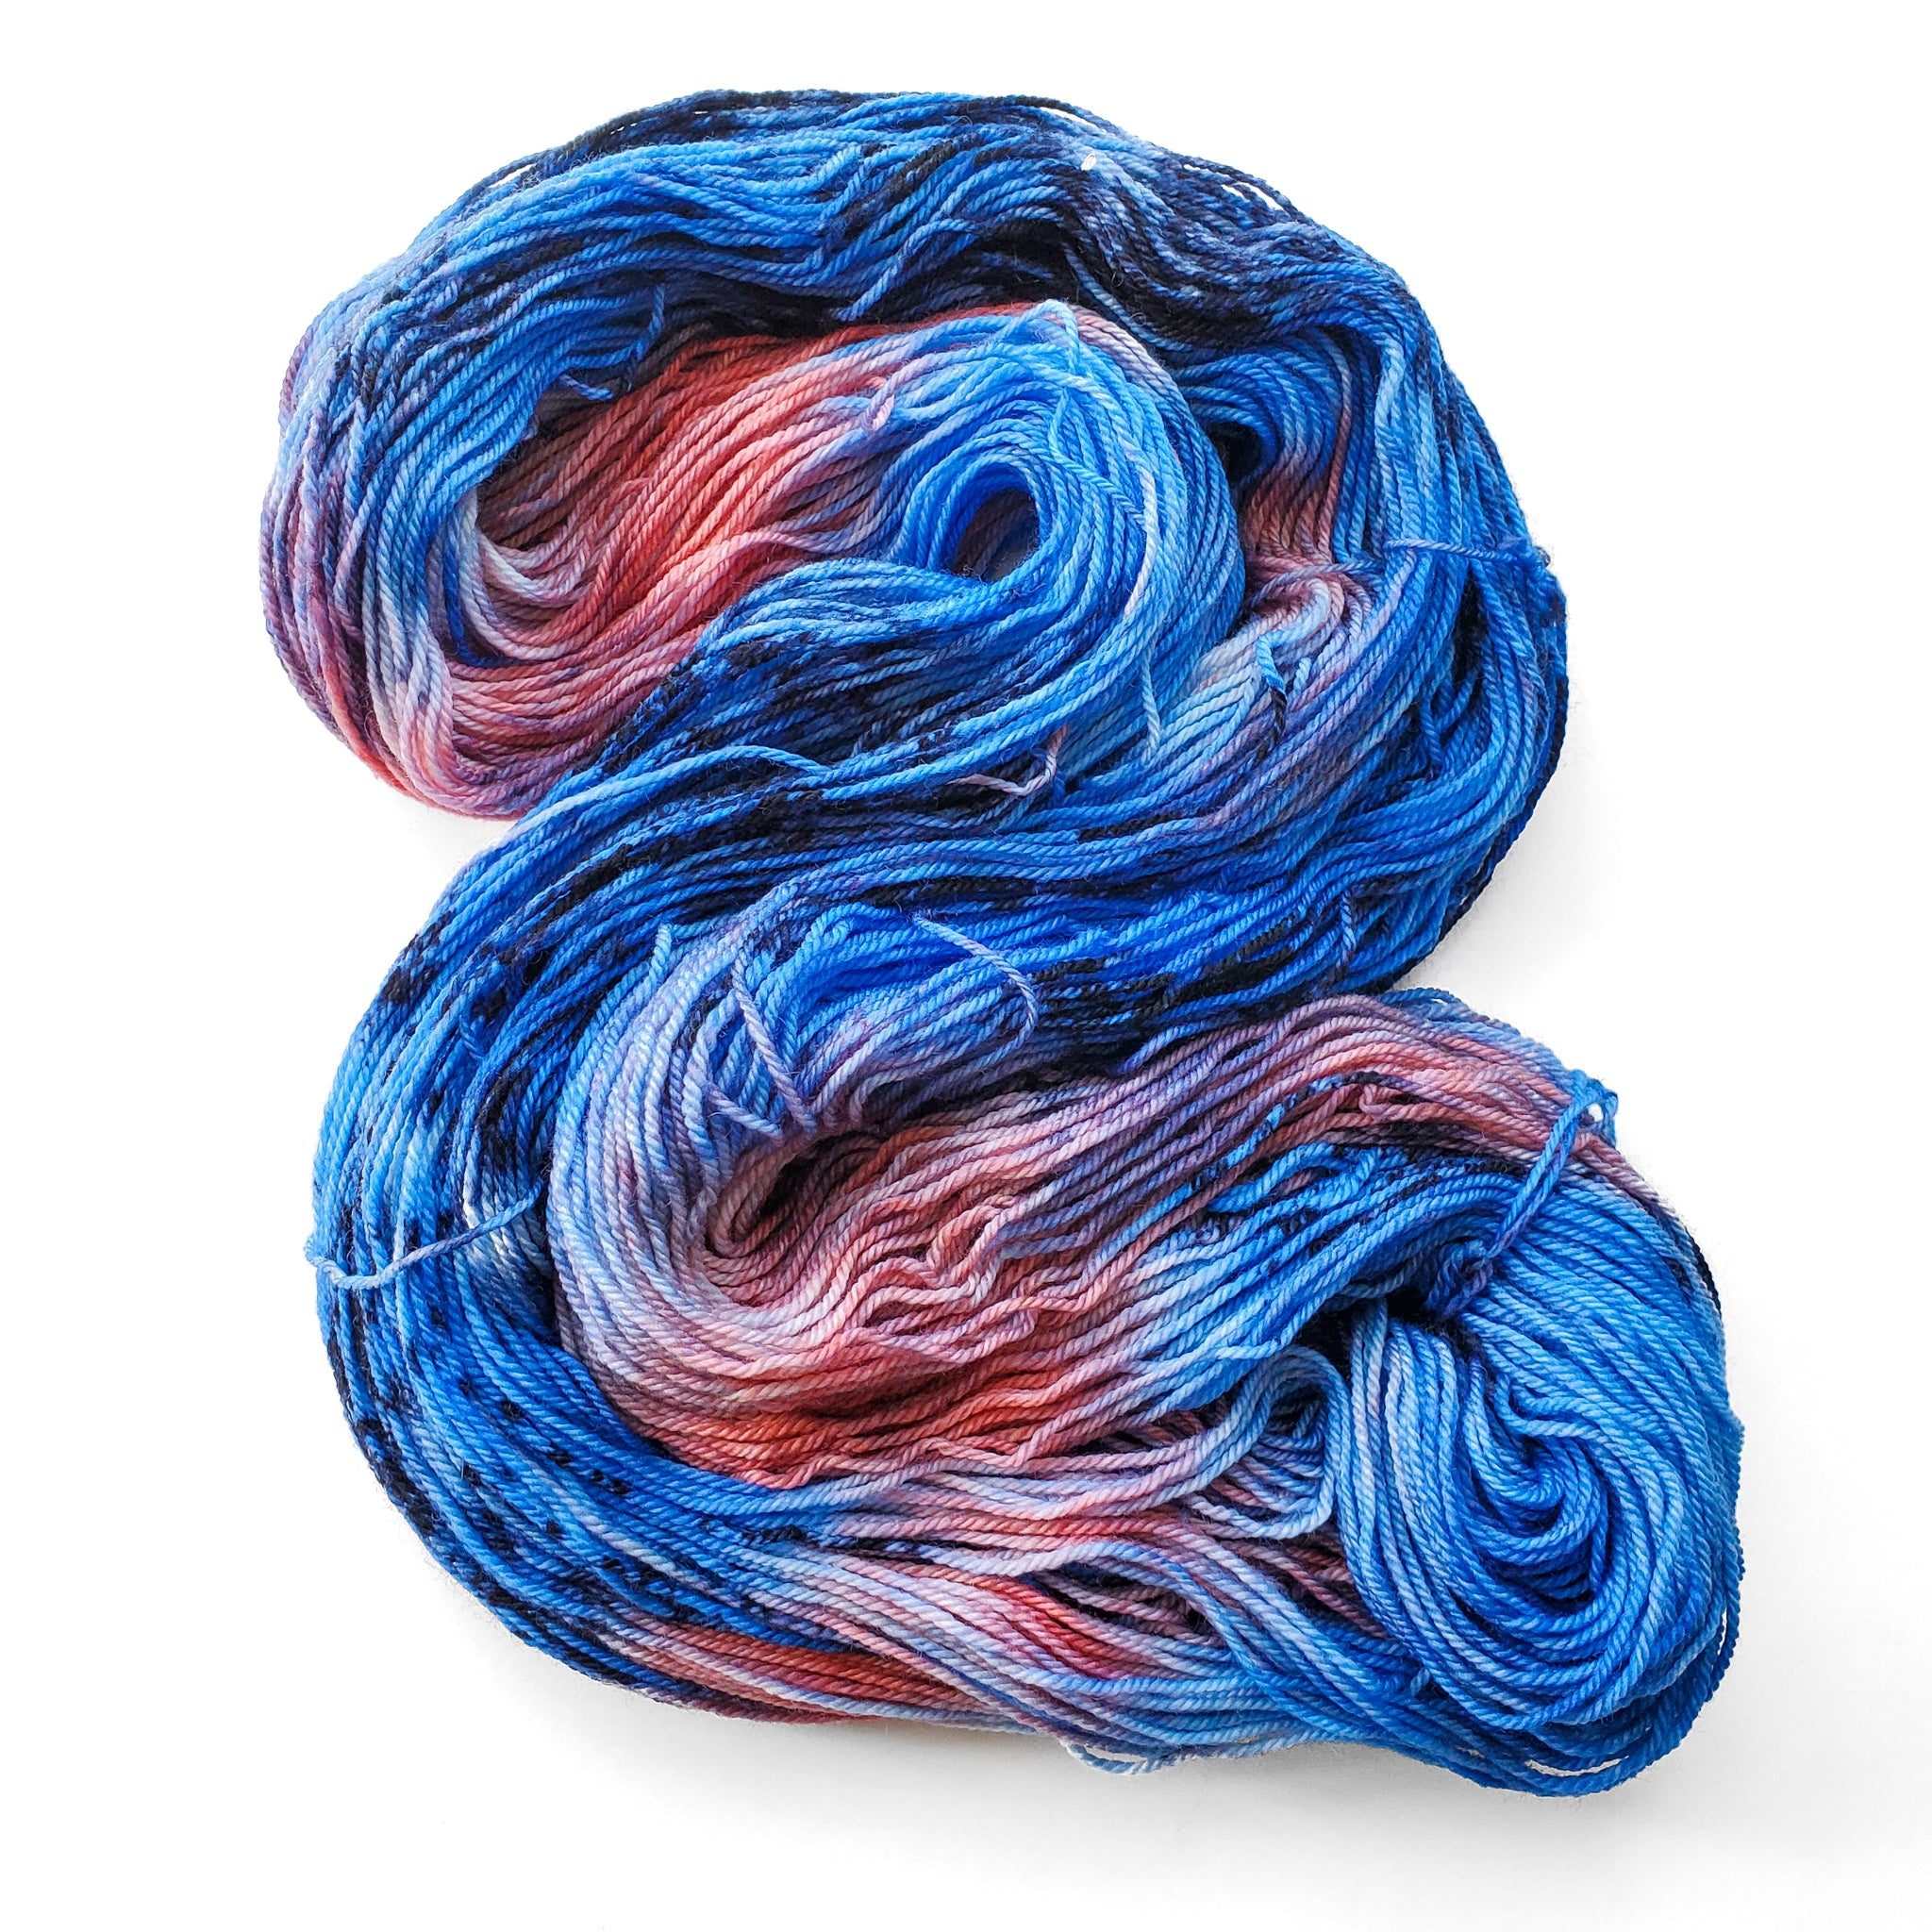 a bright blue and pink skein with dark blue speckles